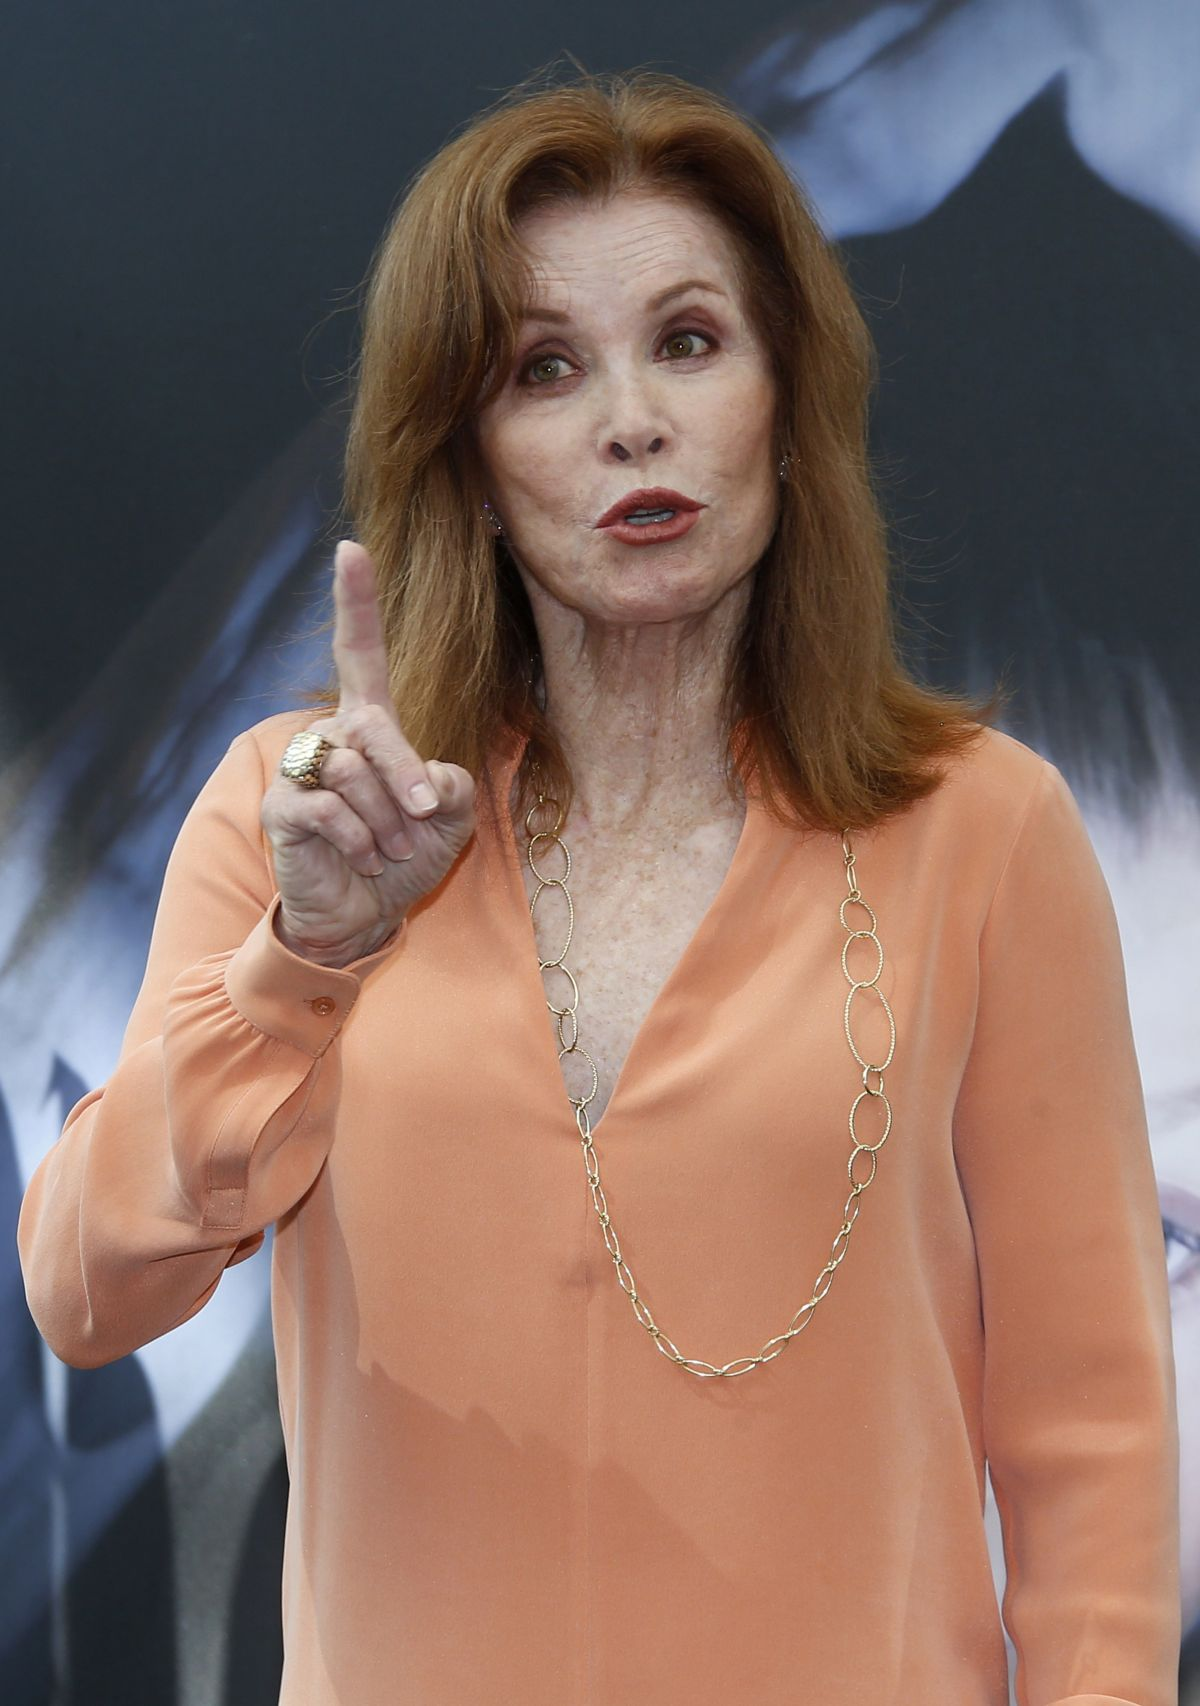 STEPHANIE POWERS at the 55th Monte Carlo TV Festival in Monte-Carlo